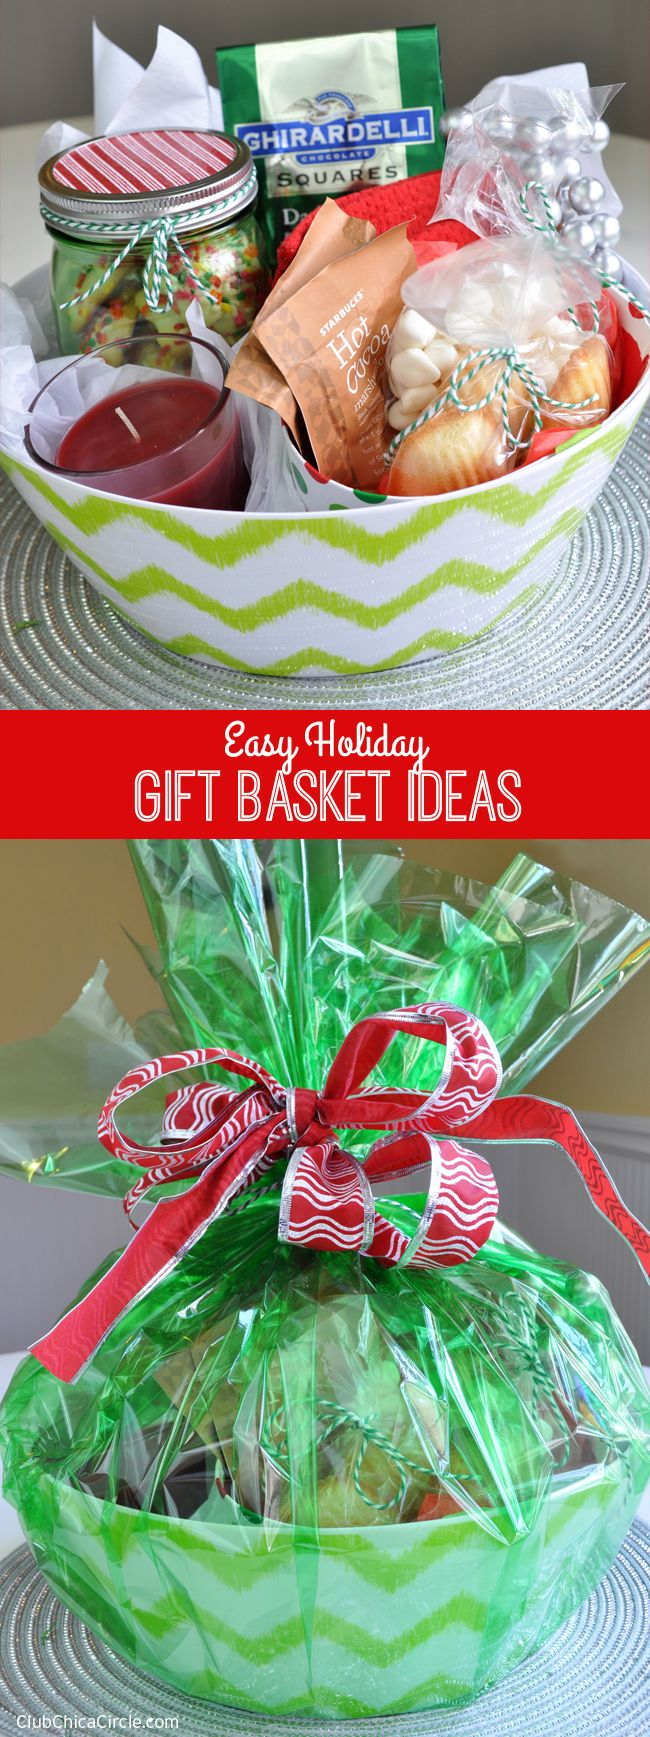 Easy Holiday Gift Basket Ideas + Giveaway   Club Chica Circle - where crafty is contagious/DOESN'T fit in a jar BUT where else to store this idea?